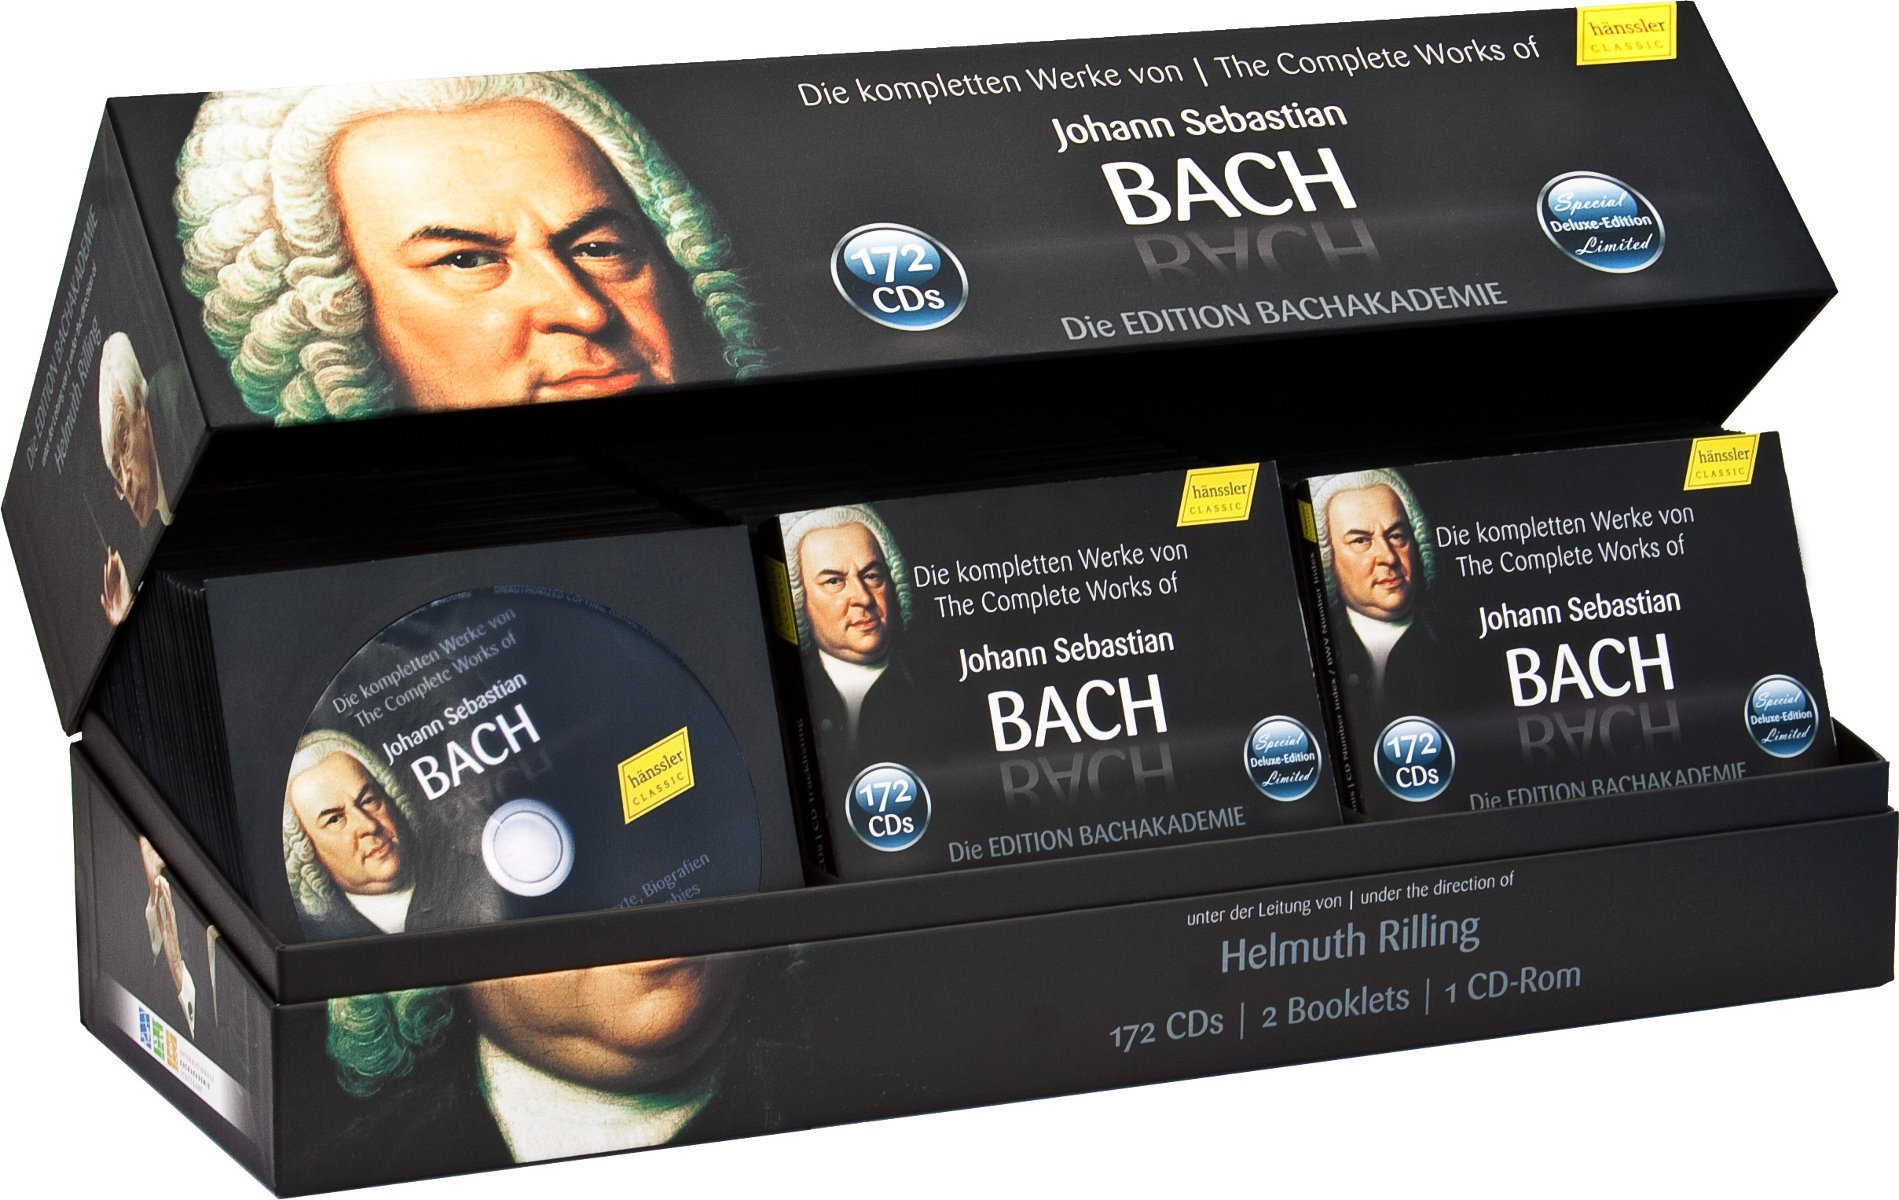 The Complete Works of Johann Sebastian Bach - Bachakademie 10th Anniversary Special Collection